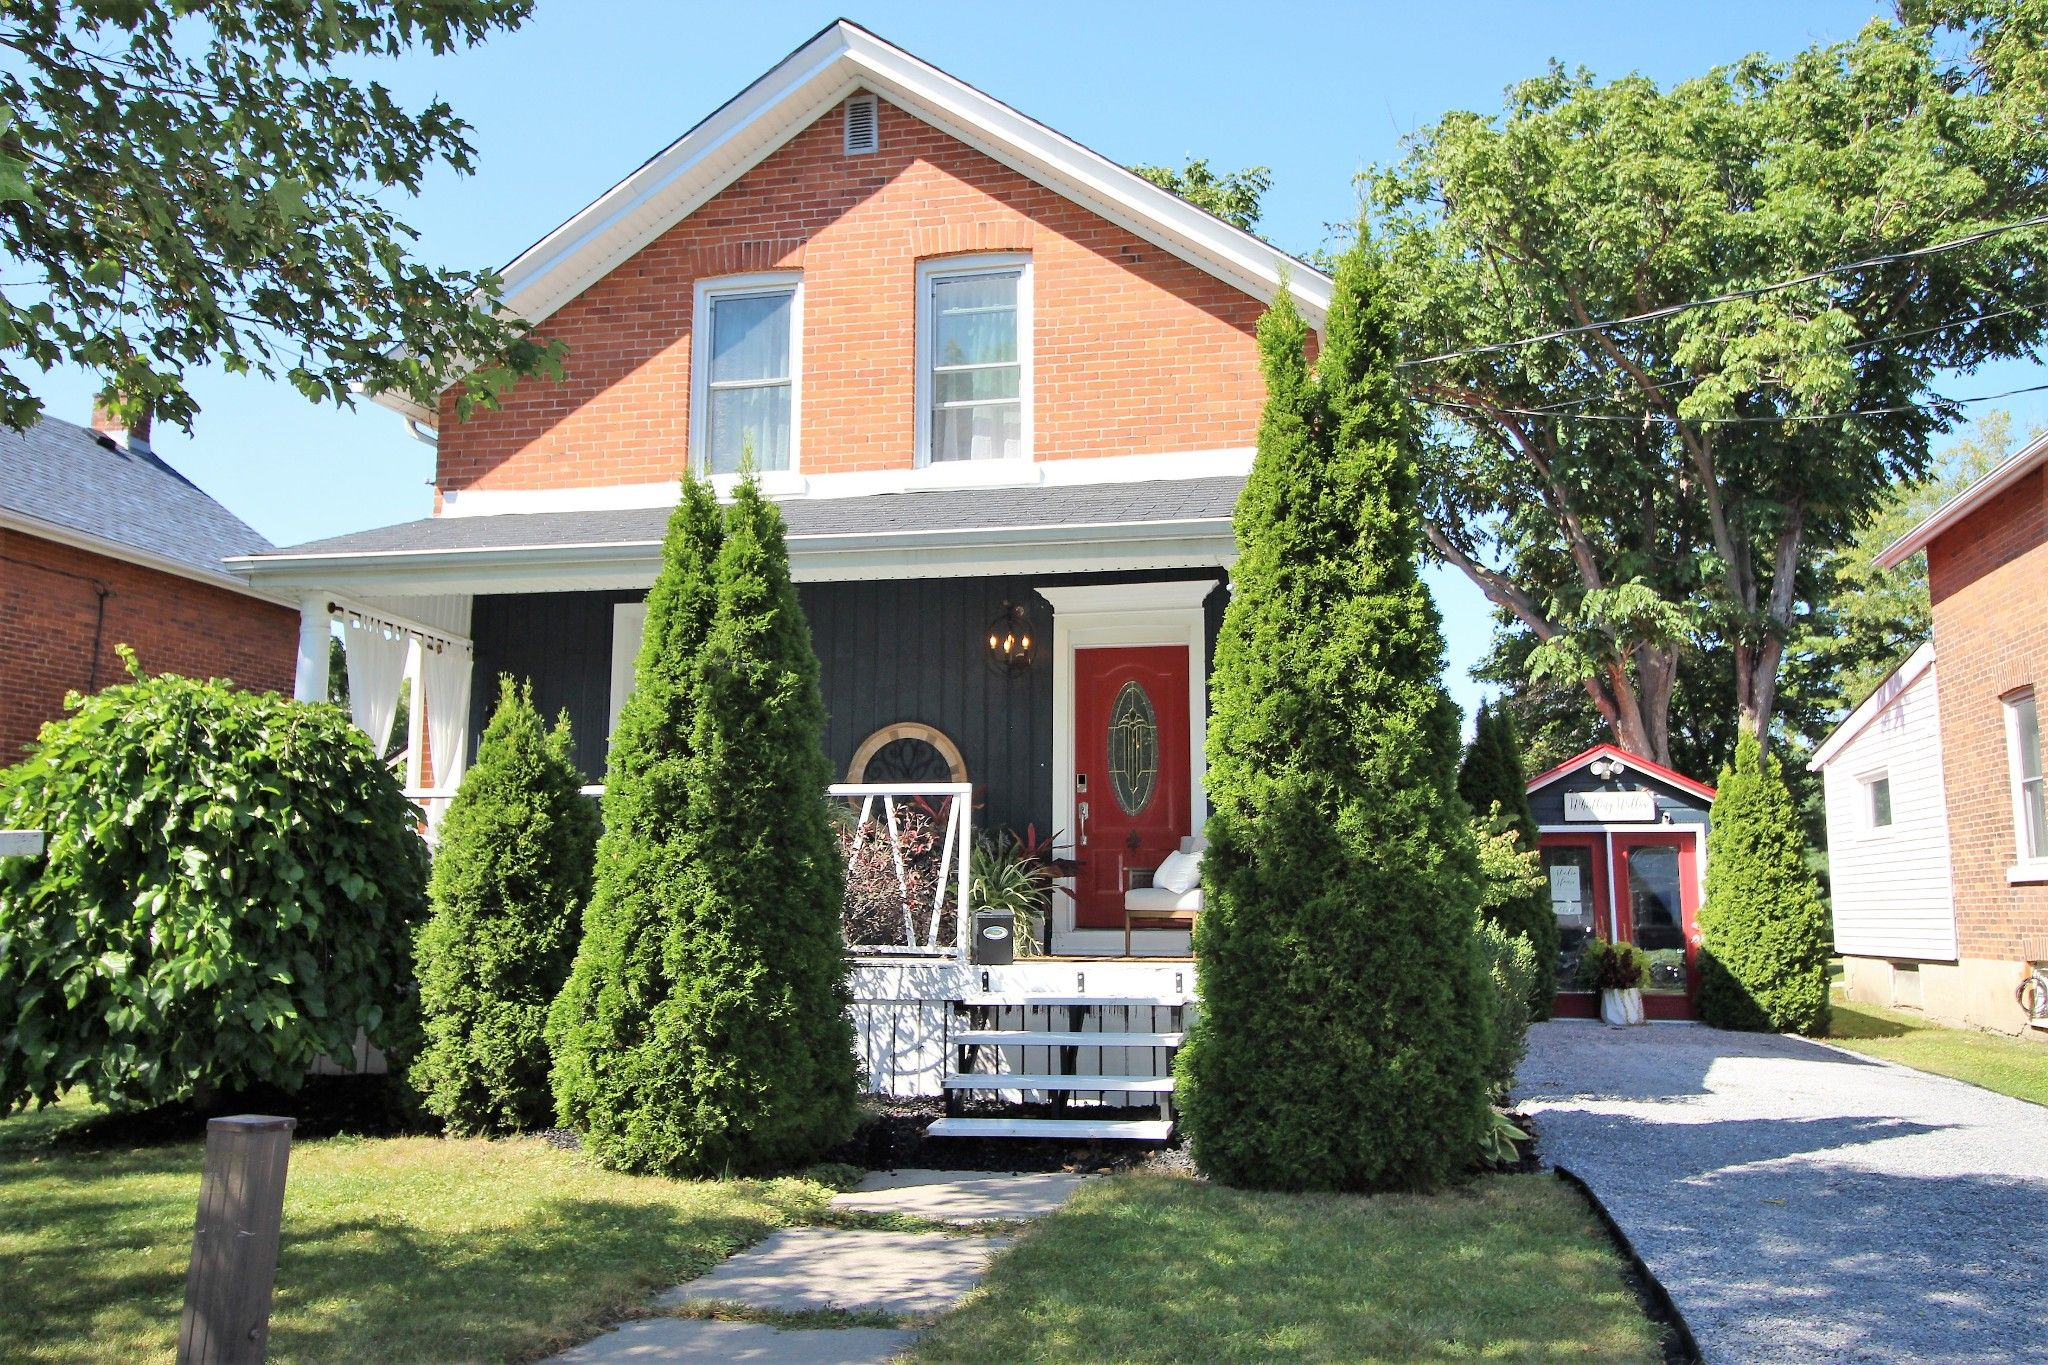 Main Photo: 144 Chapel Street in Cobourg: House for sale : MLS®# X5365669